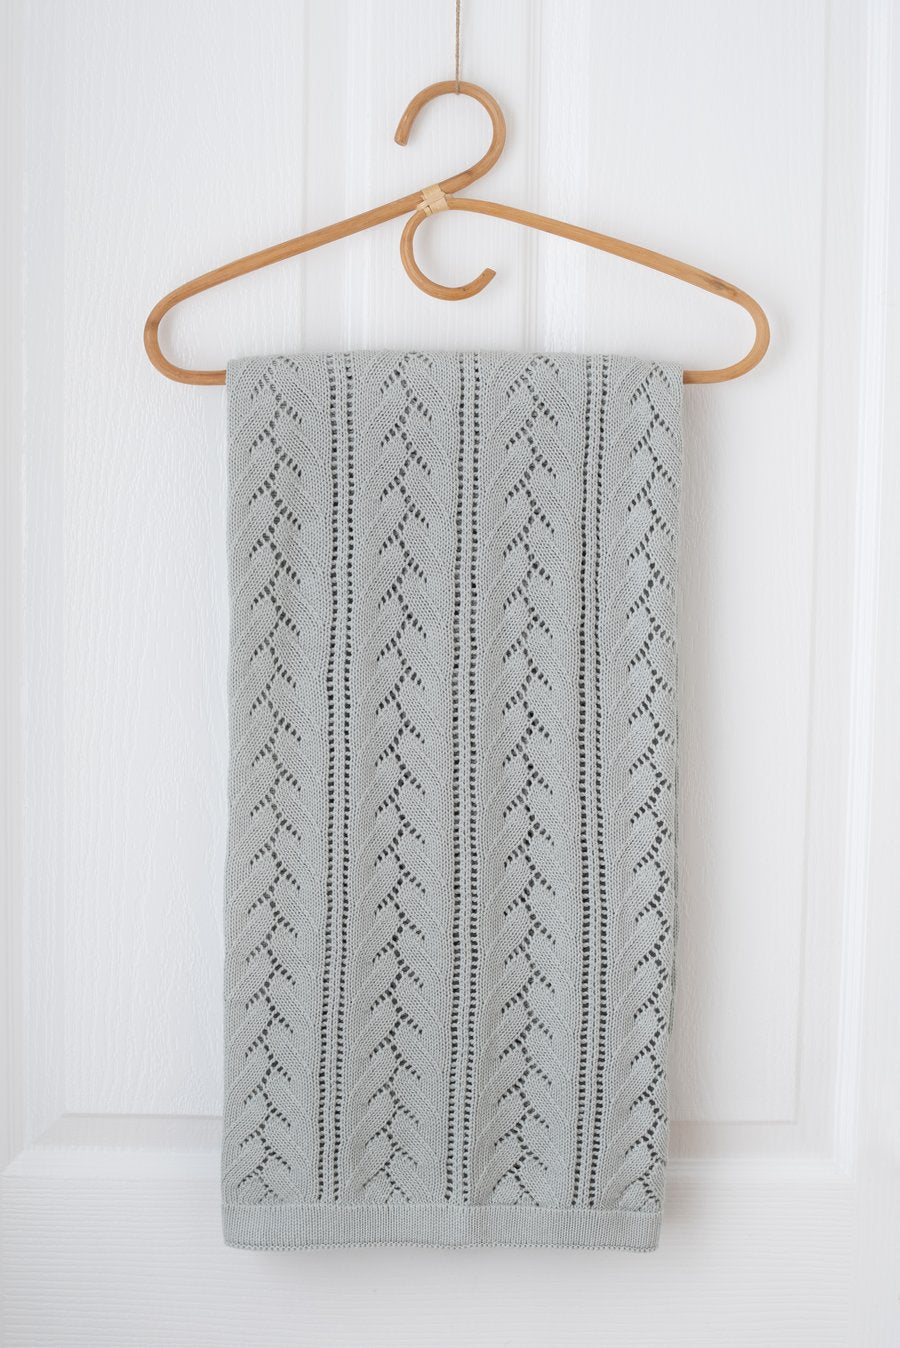 Kute Cuddles - Bloom Knit Baby Blanket -  Sage